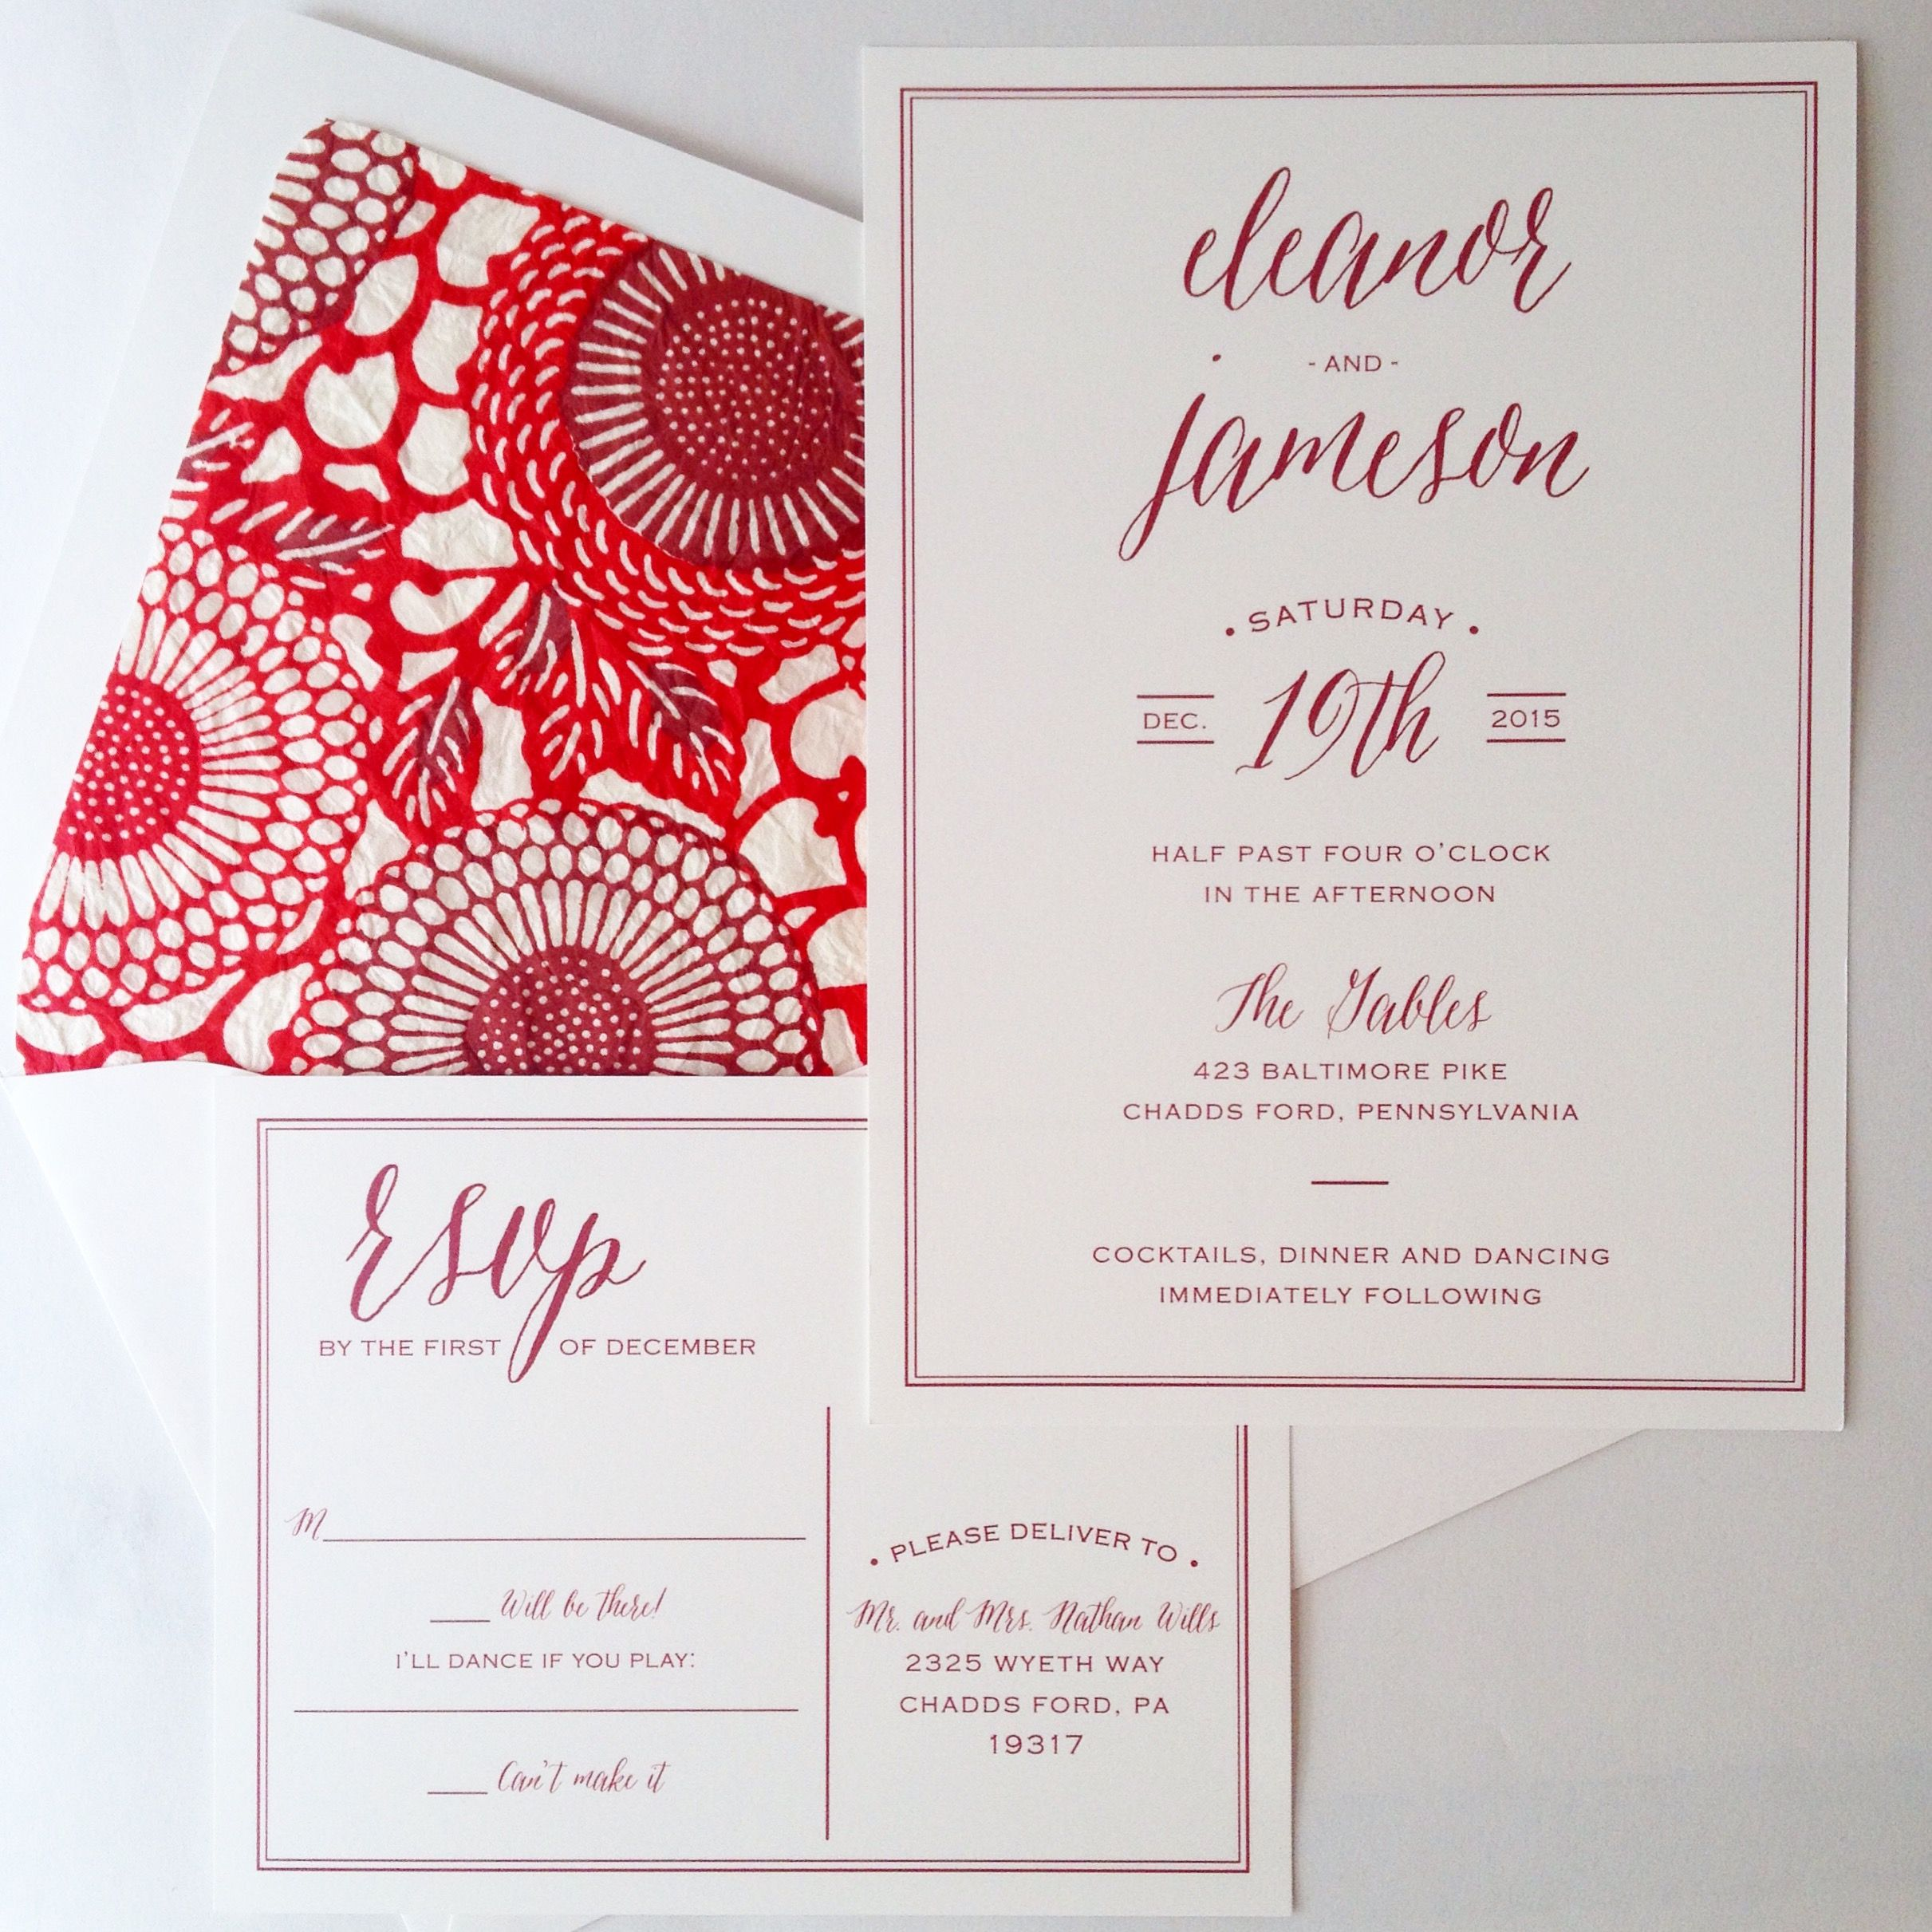 Simple, elegant wedding invitation. #calligraphy #floral #red ...